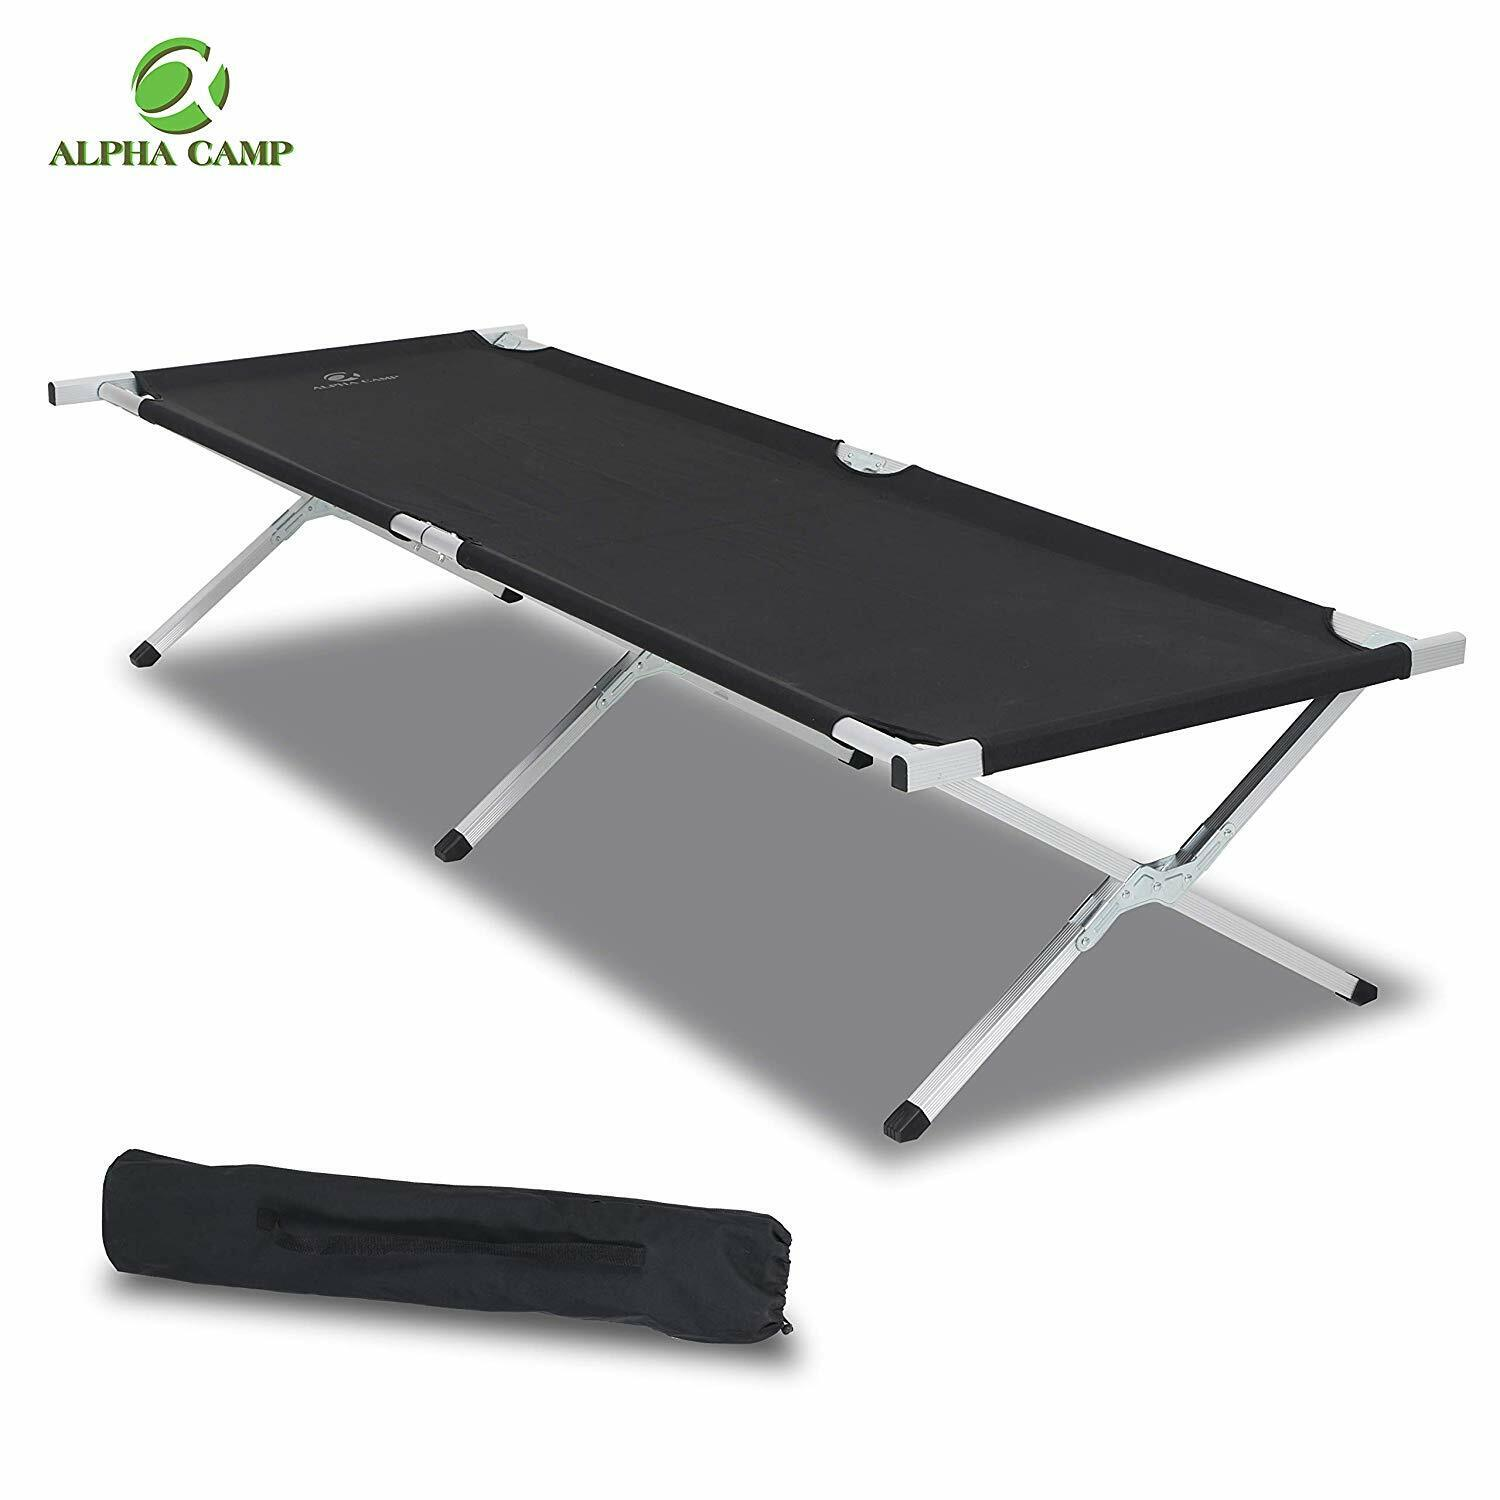 ALPHA CAMP Oversized Camping Cot Portable Aluminum Sleeping